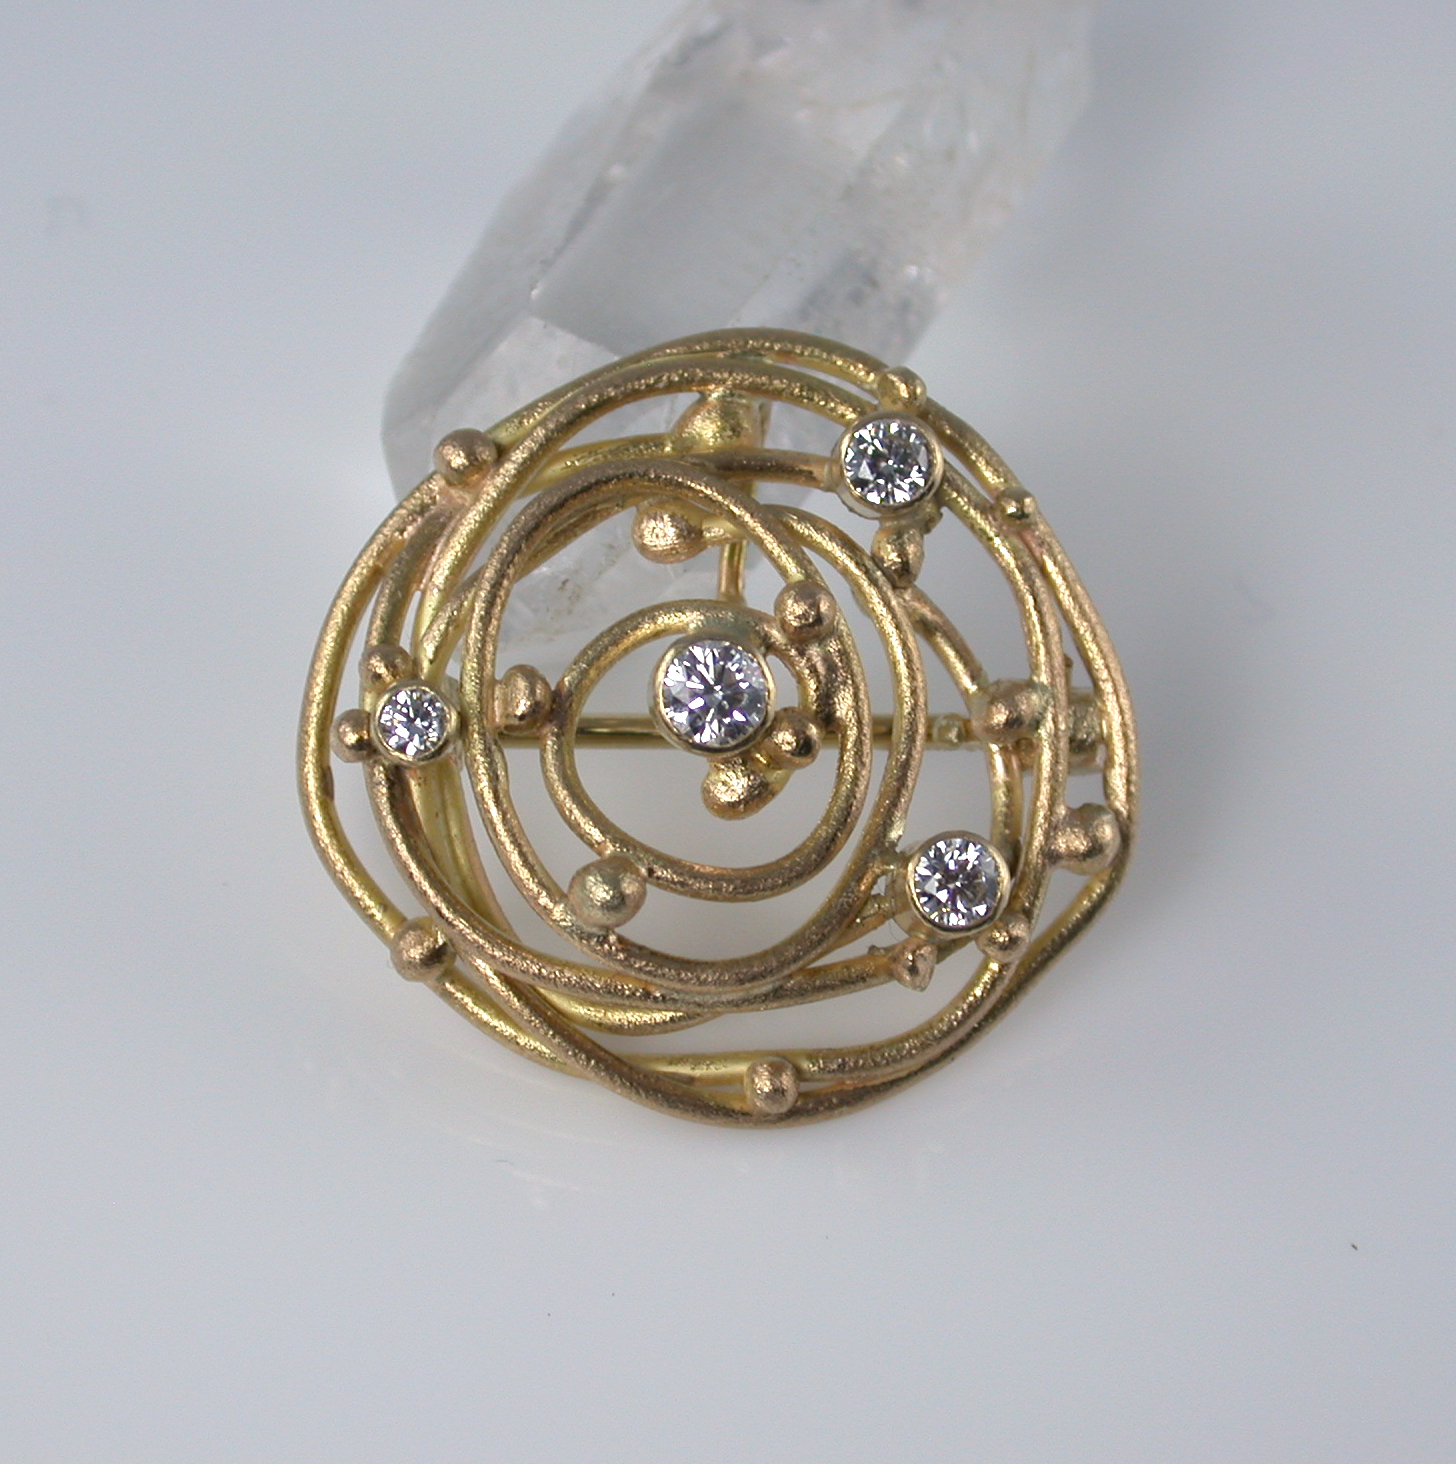 Brooch / Pendant: 18k, twvvs diamonds